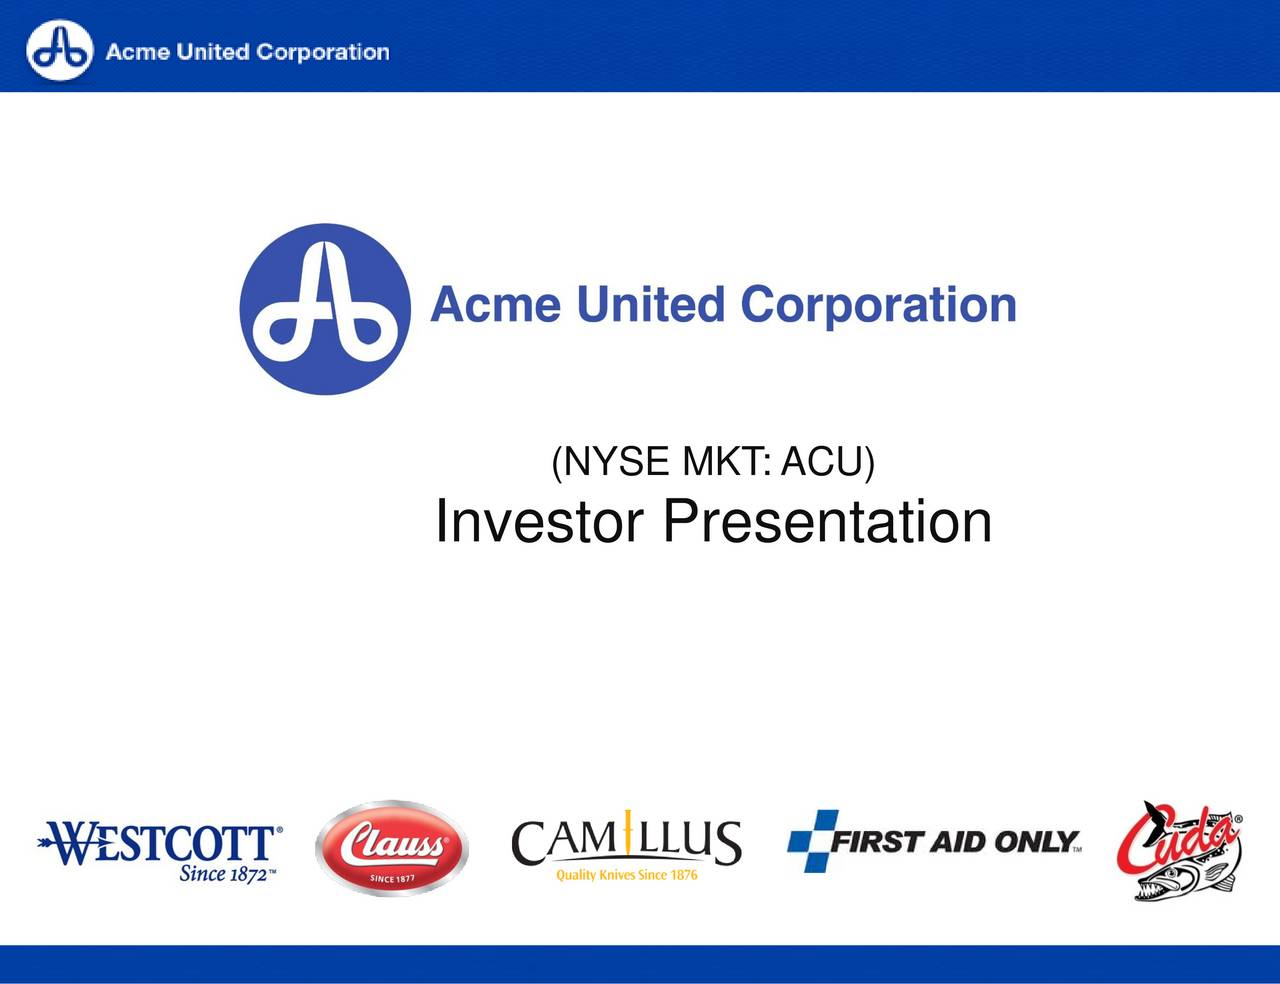 acme united corporation Acu: acme united corporation - full company report get the latest full company report for acme united corporation from zacks investment research.